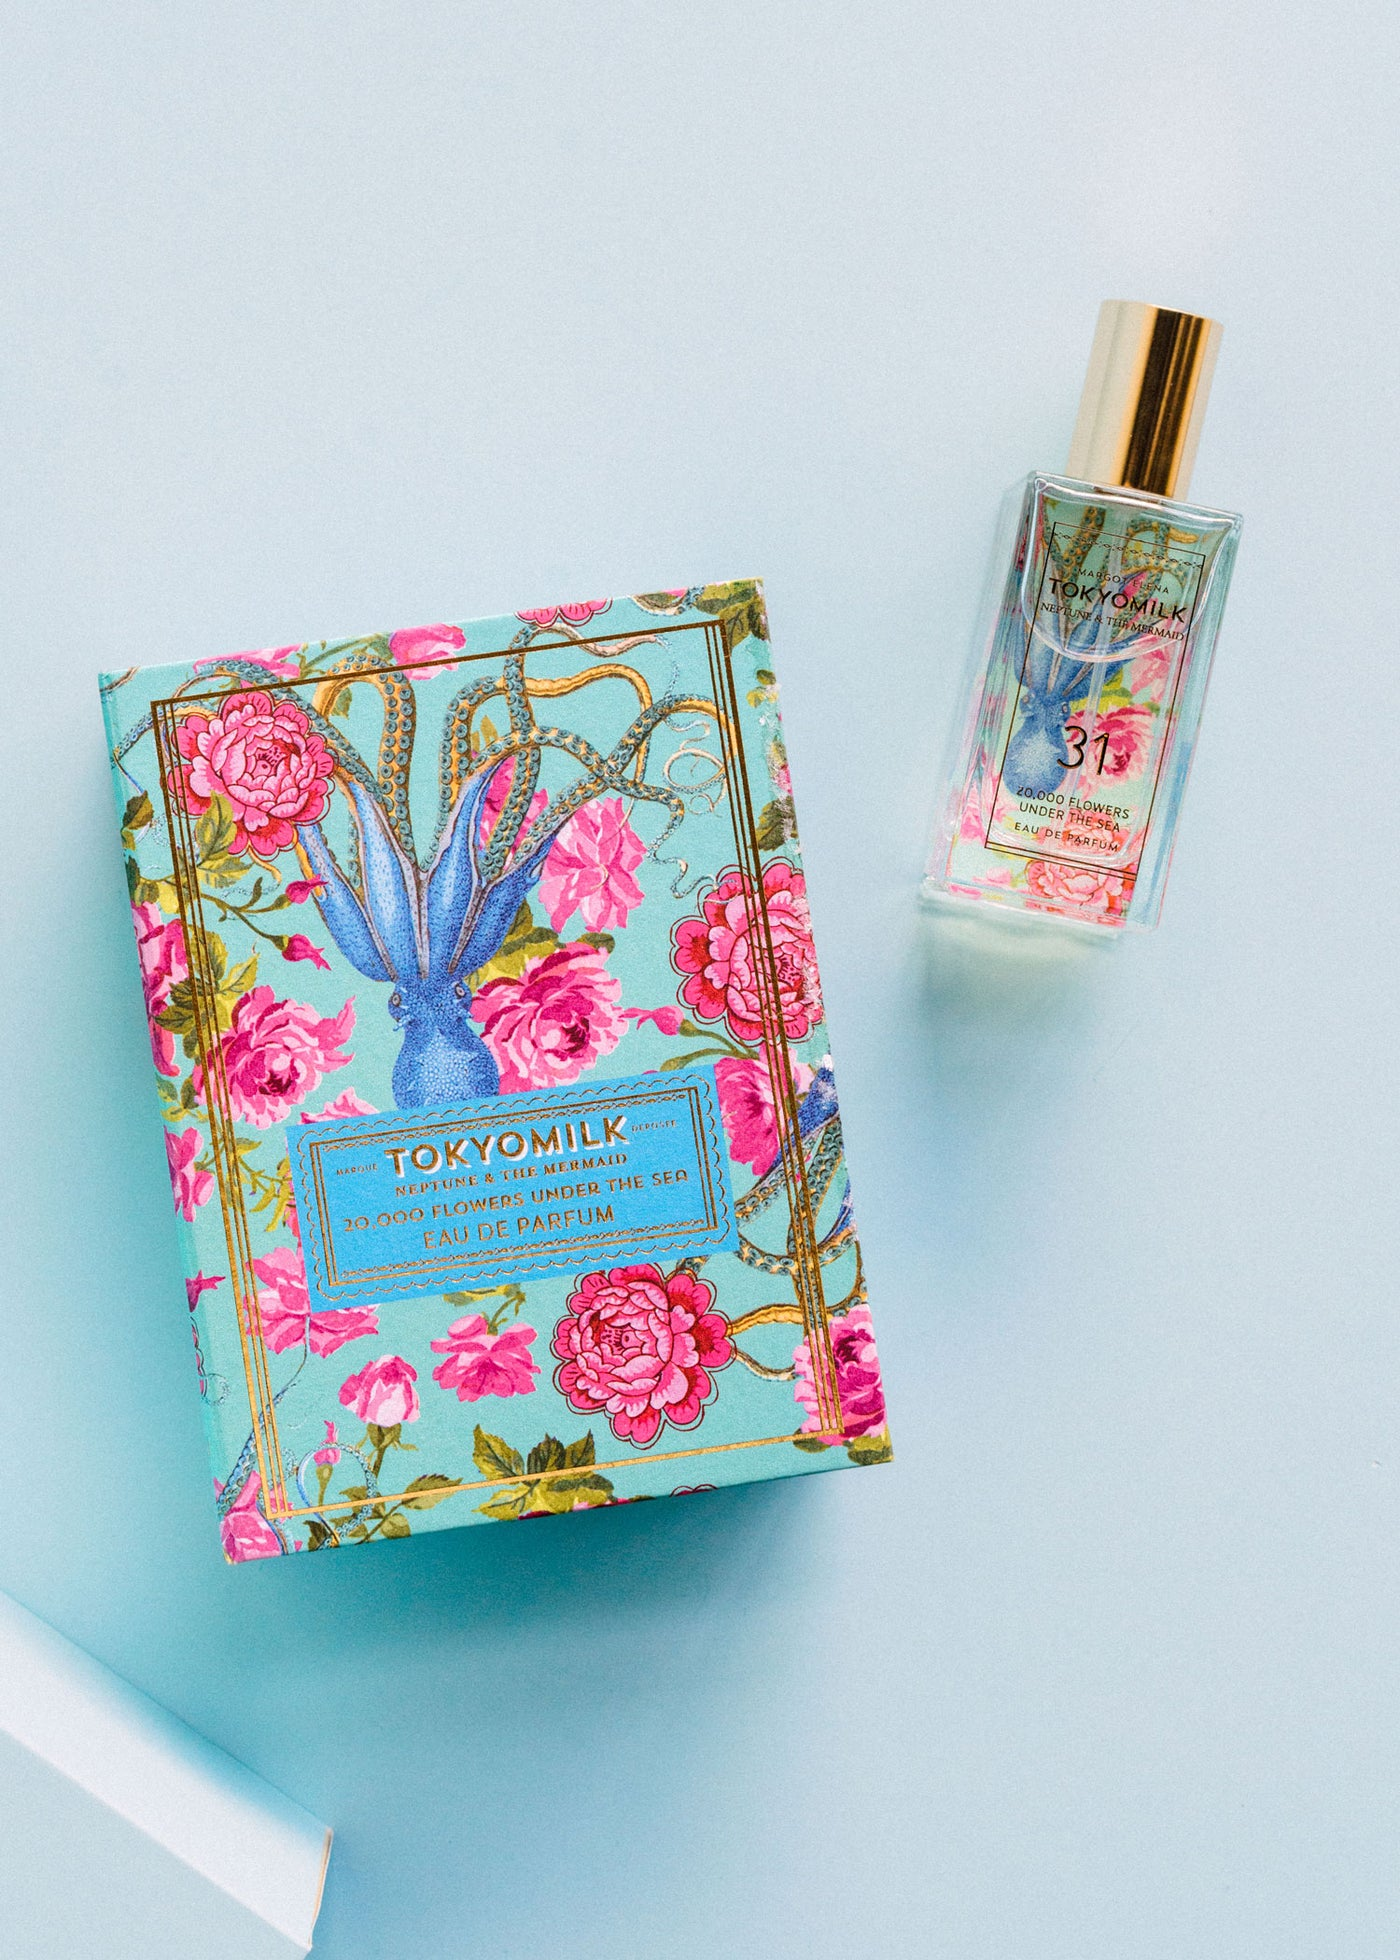 20,000 Flowers Under the Sea Parfum